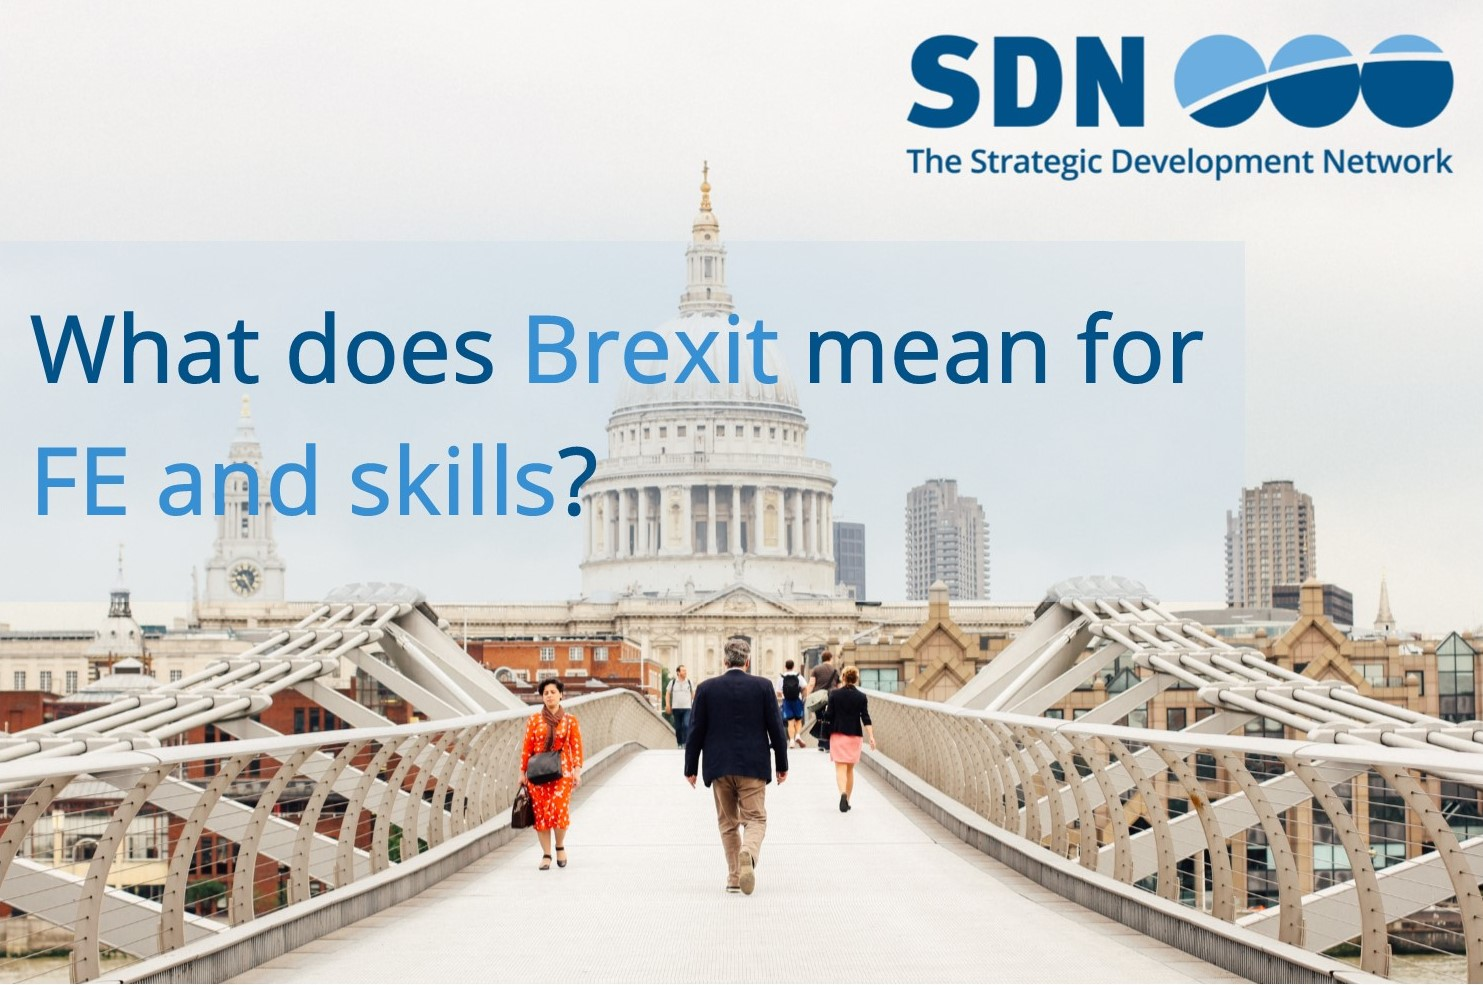 brexit and FE Skills